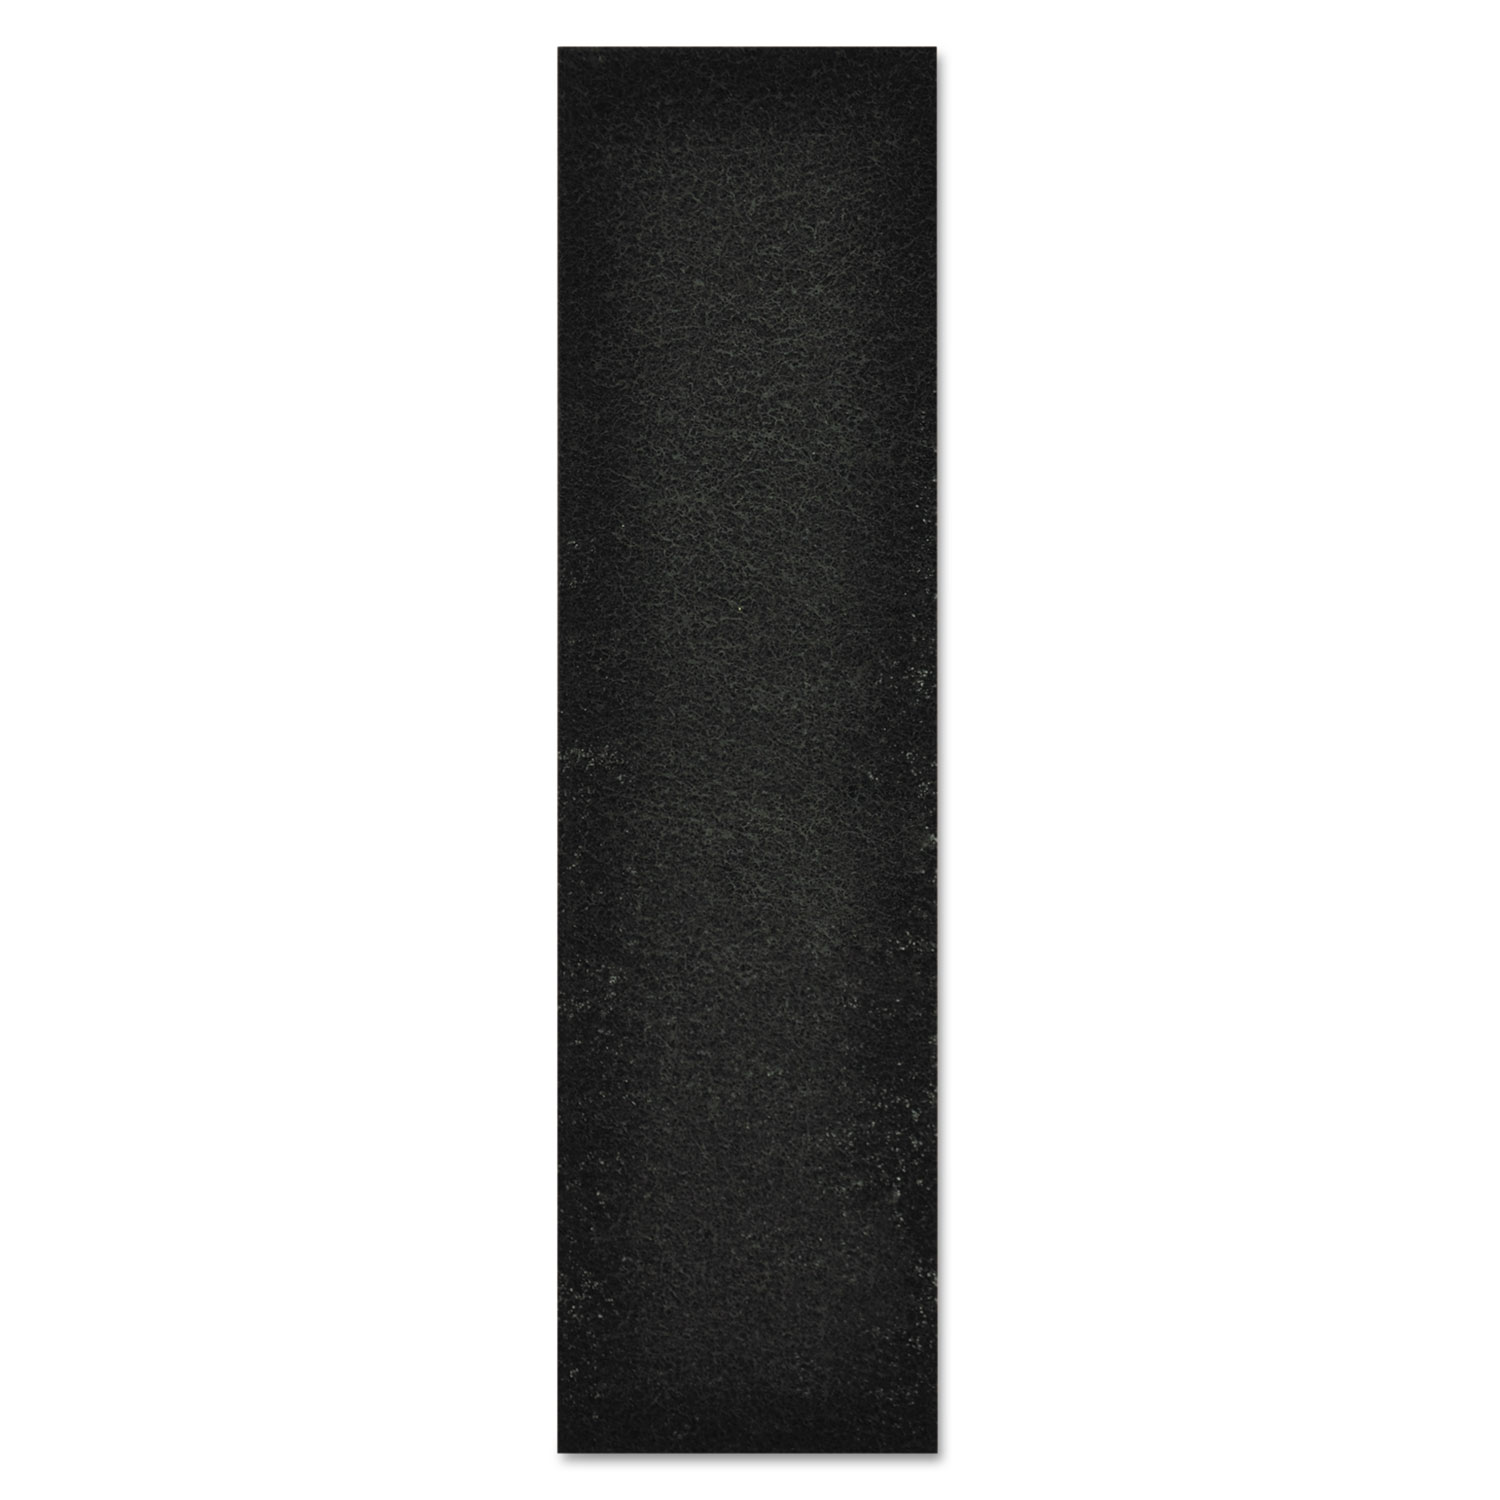 Carbon Filter for Fellowes 90 Air Purifiers, 4 3/8 x 16 3/8, 4/Pack